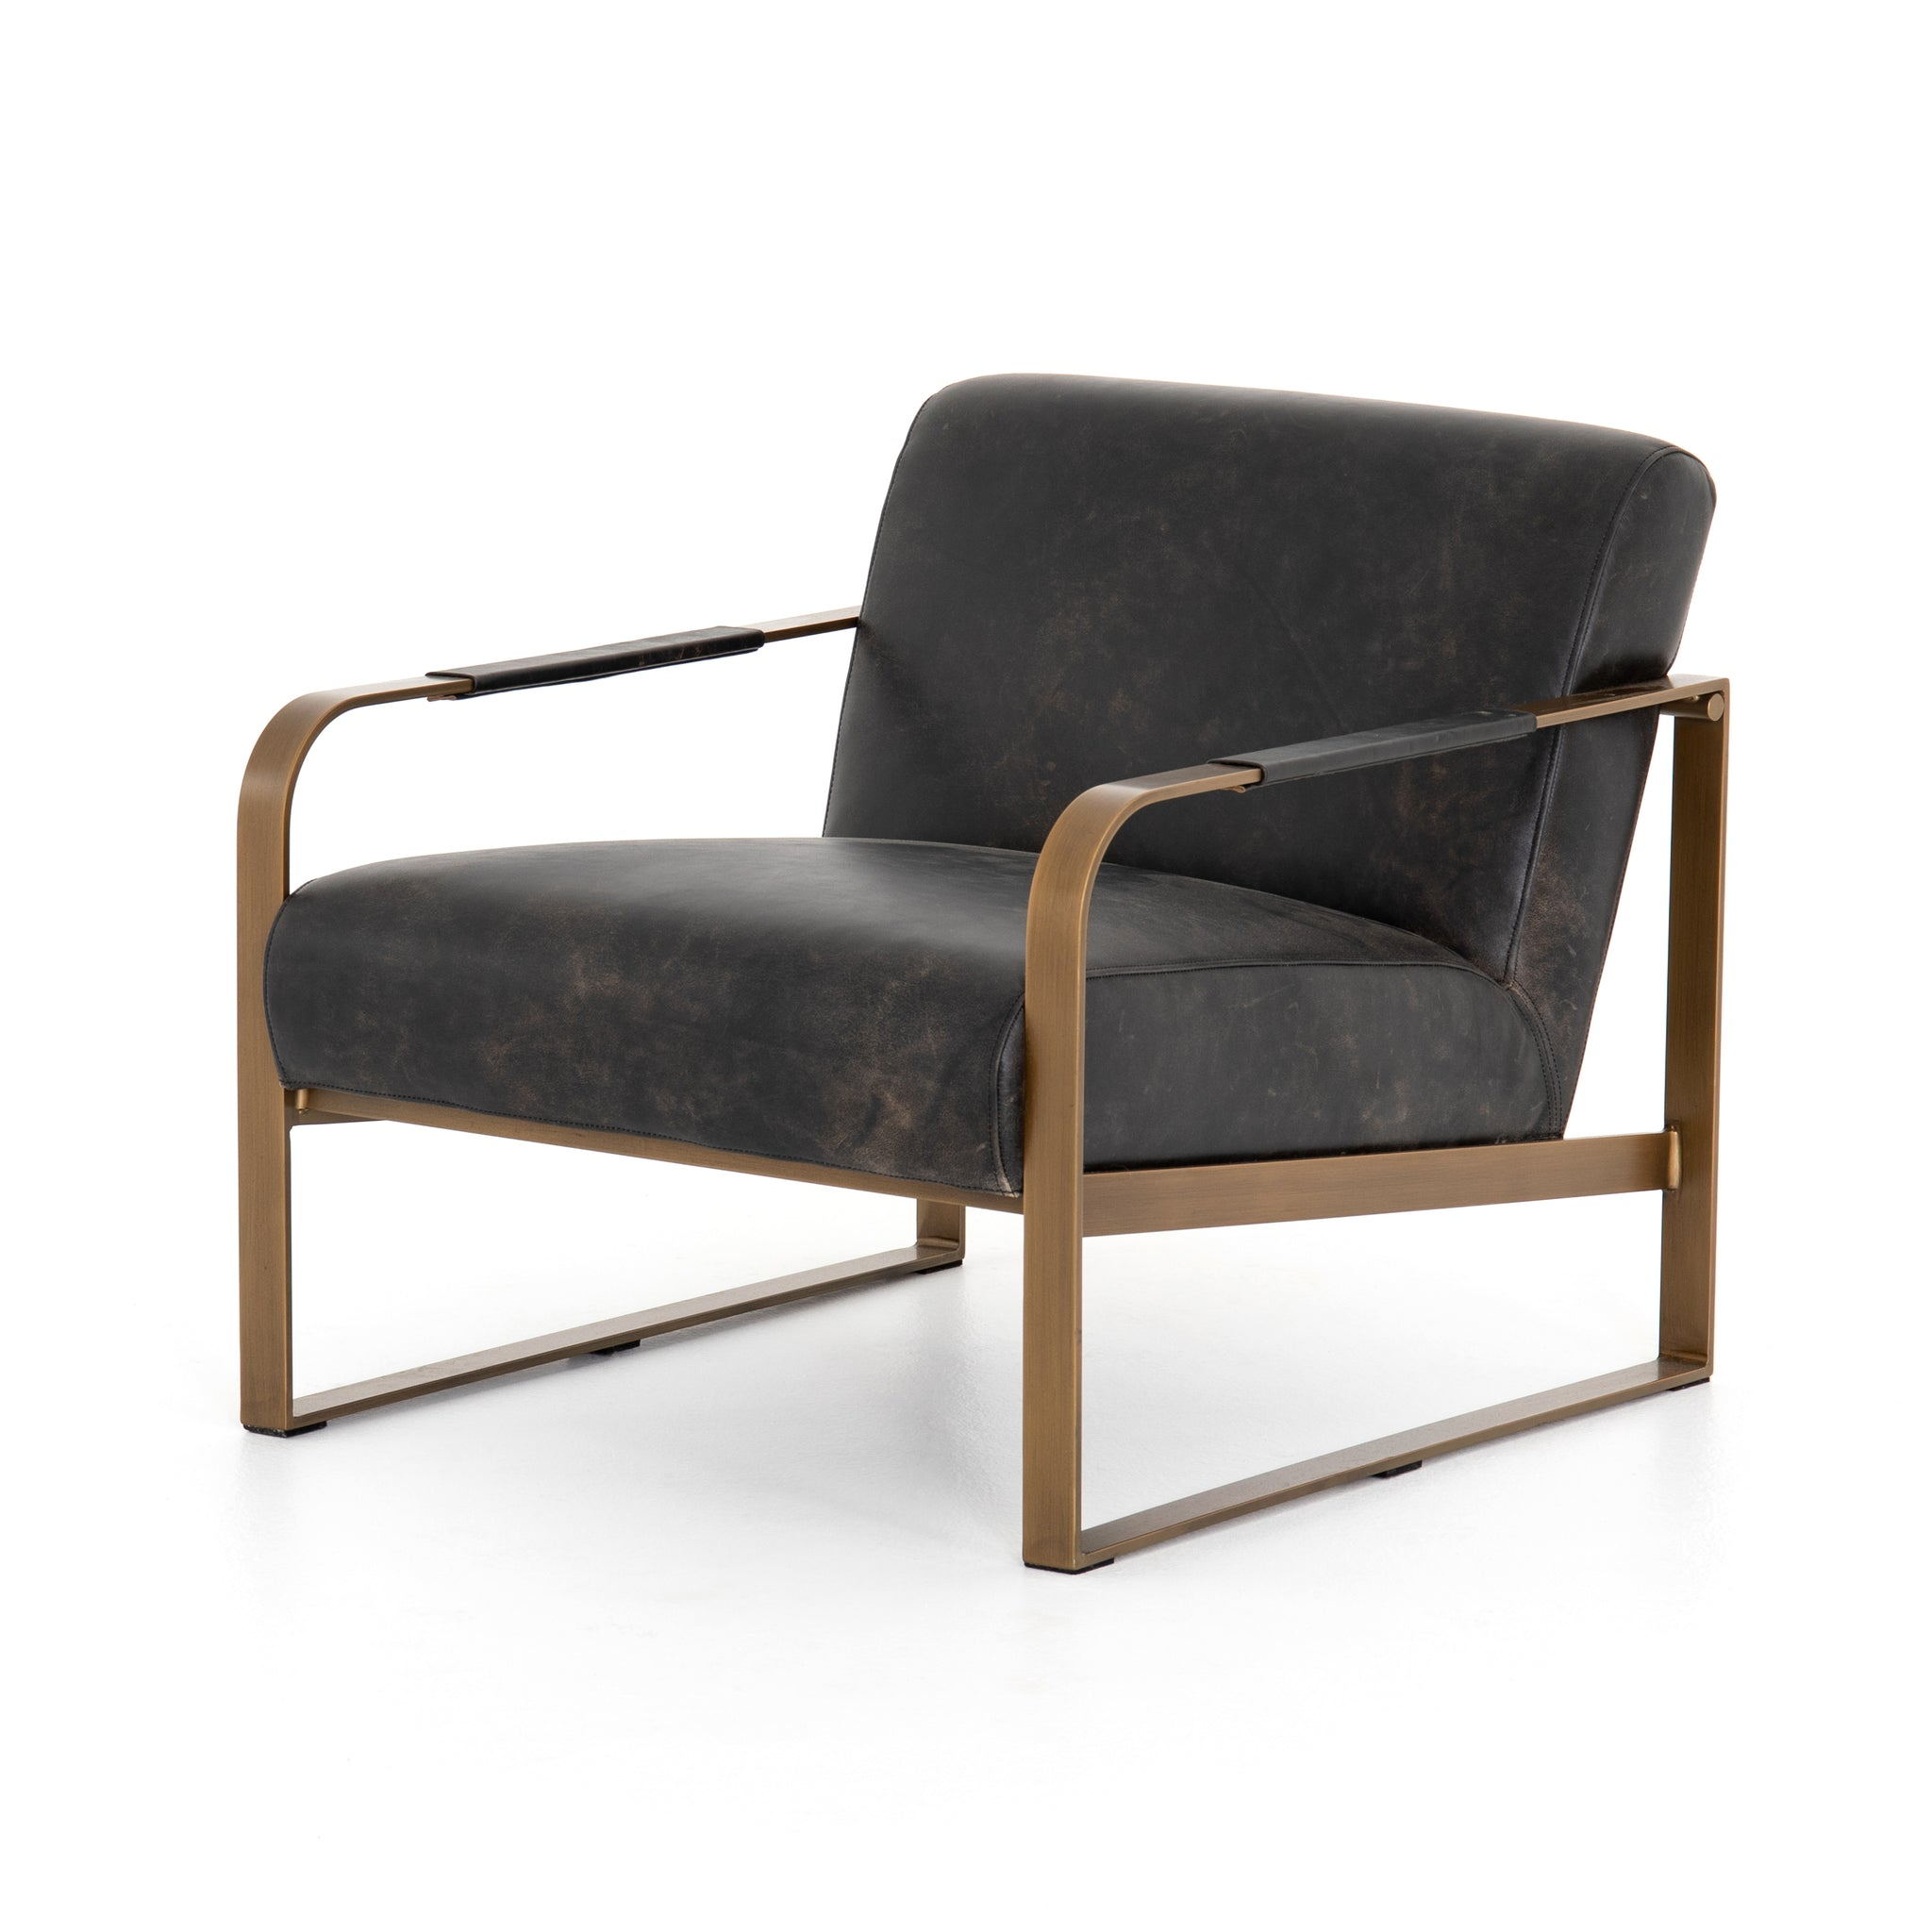 Modern-Minimalist Black Top Grain Leather Chair Iron Frame - Furniture on Main